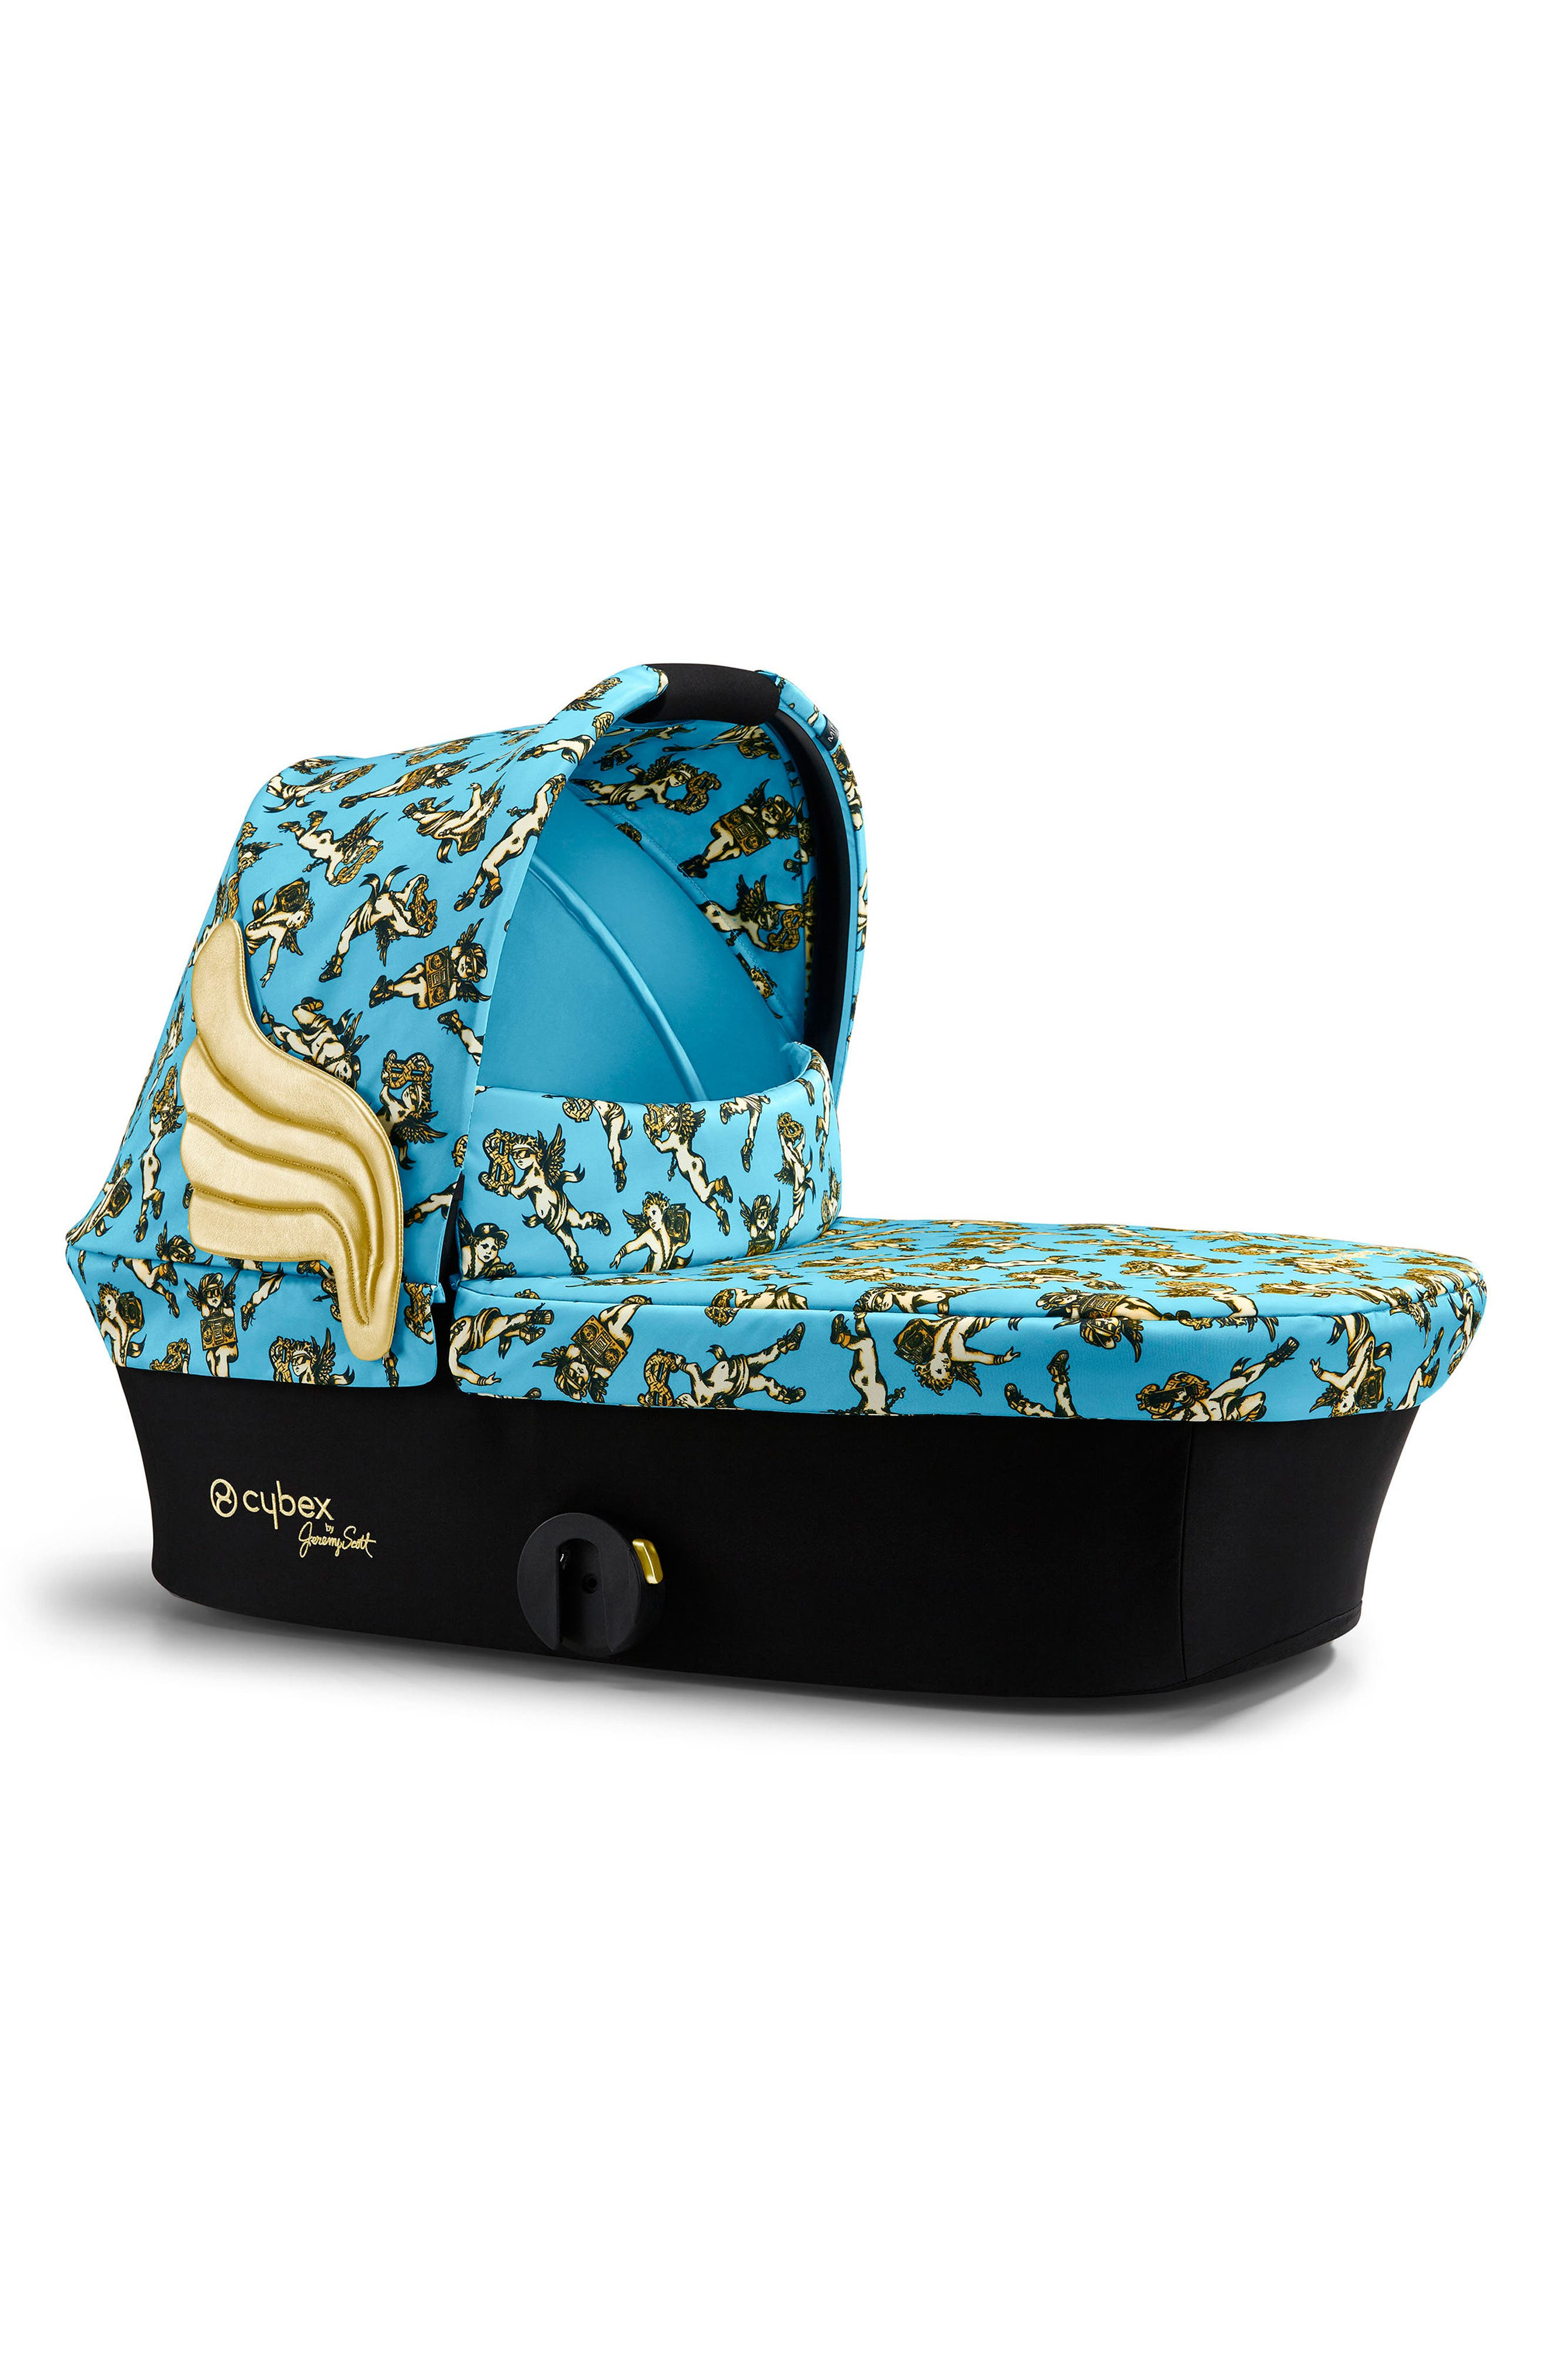 x Jeremy Scott Priam Cherub Carry Cot,                             Main thumbnail 1, color,                             Blue